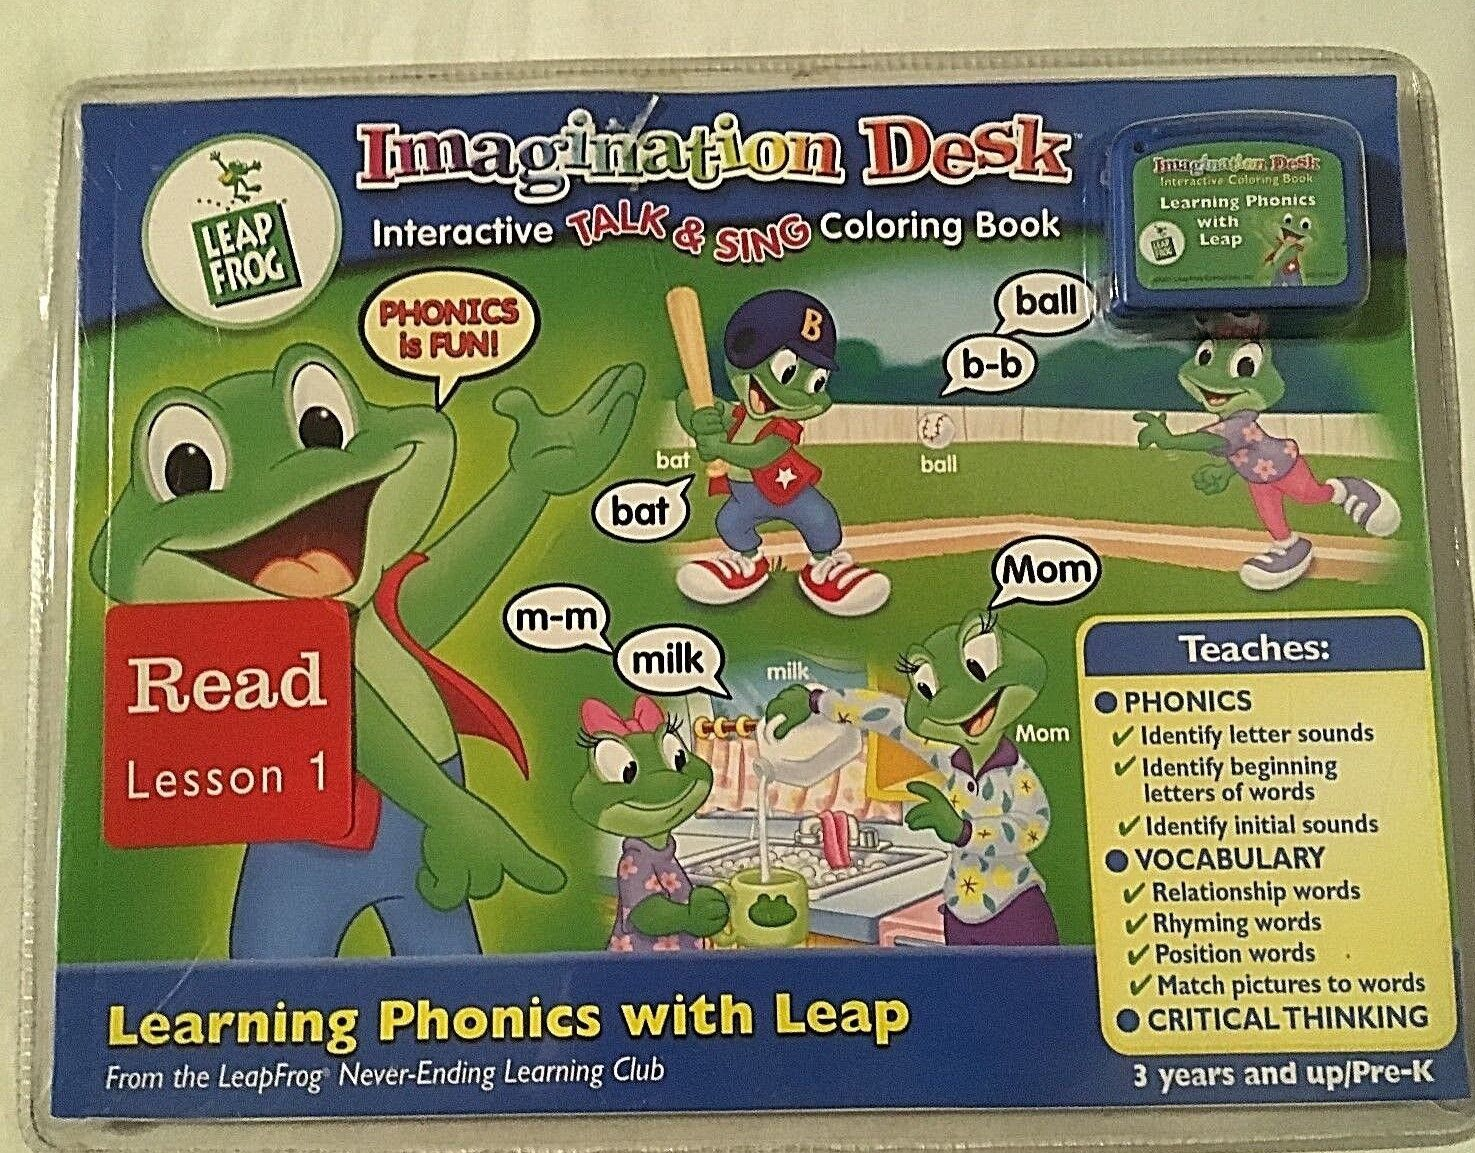 NEW LEAP FROG IMAGINATION DESK INTERACTIVE TALK & SING COLORING BOOK FREE SHIP